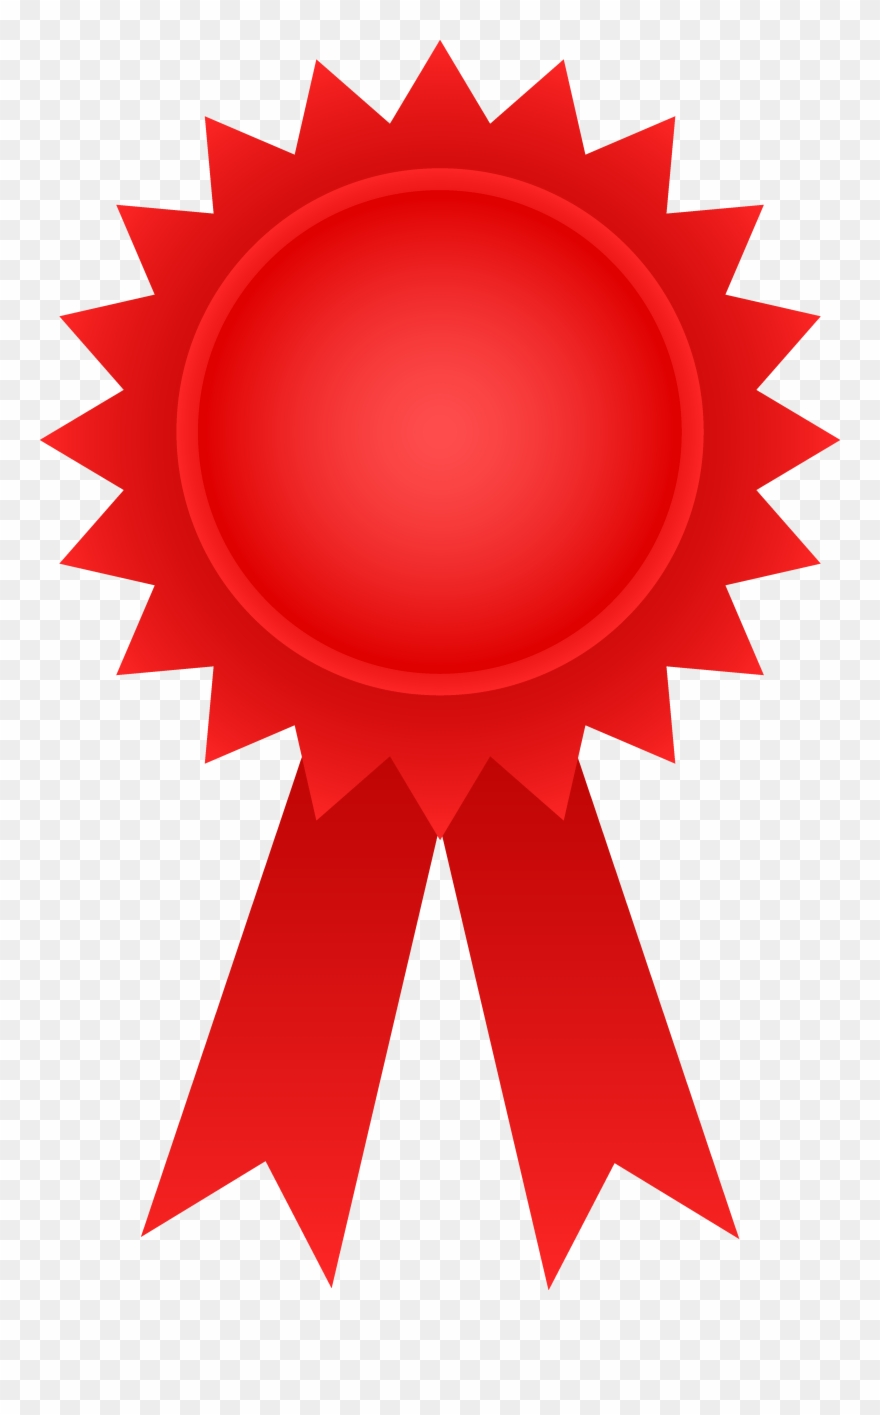 Prize clipart award ribbon. Red png download